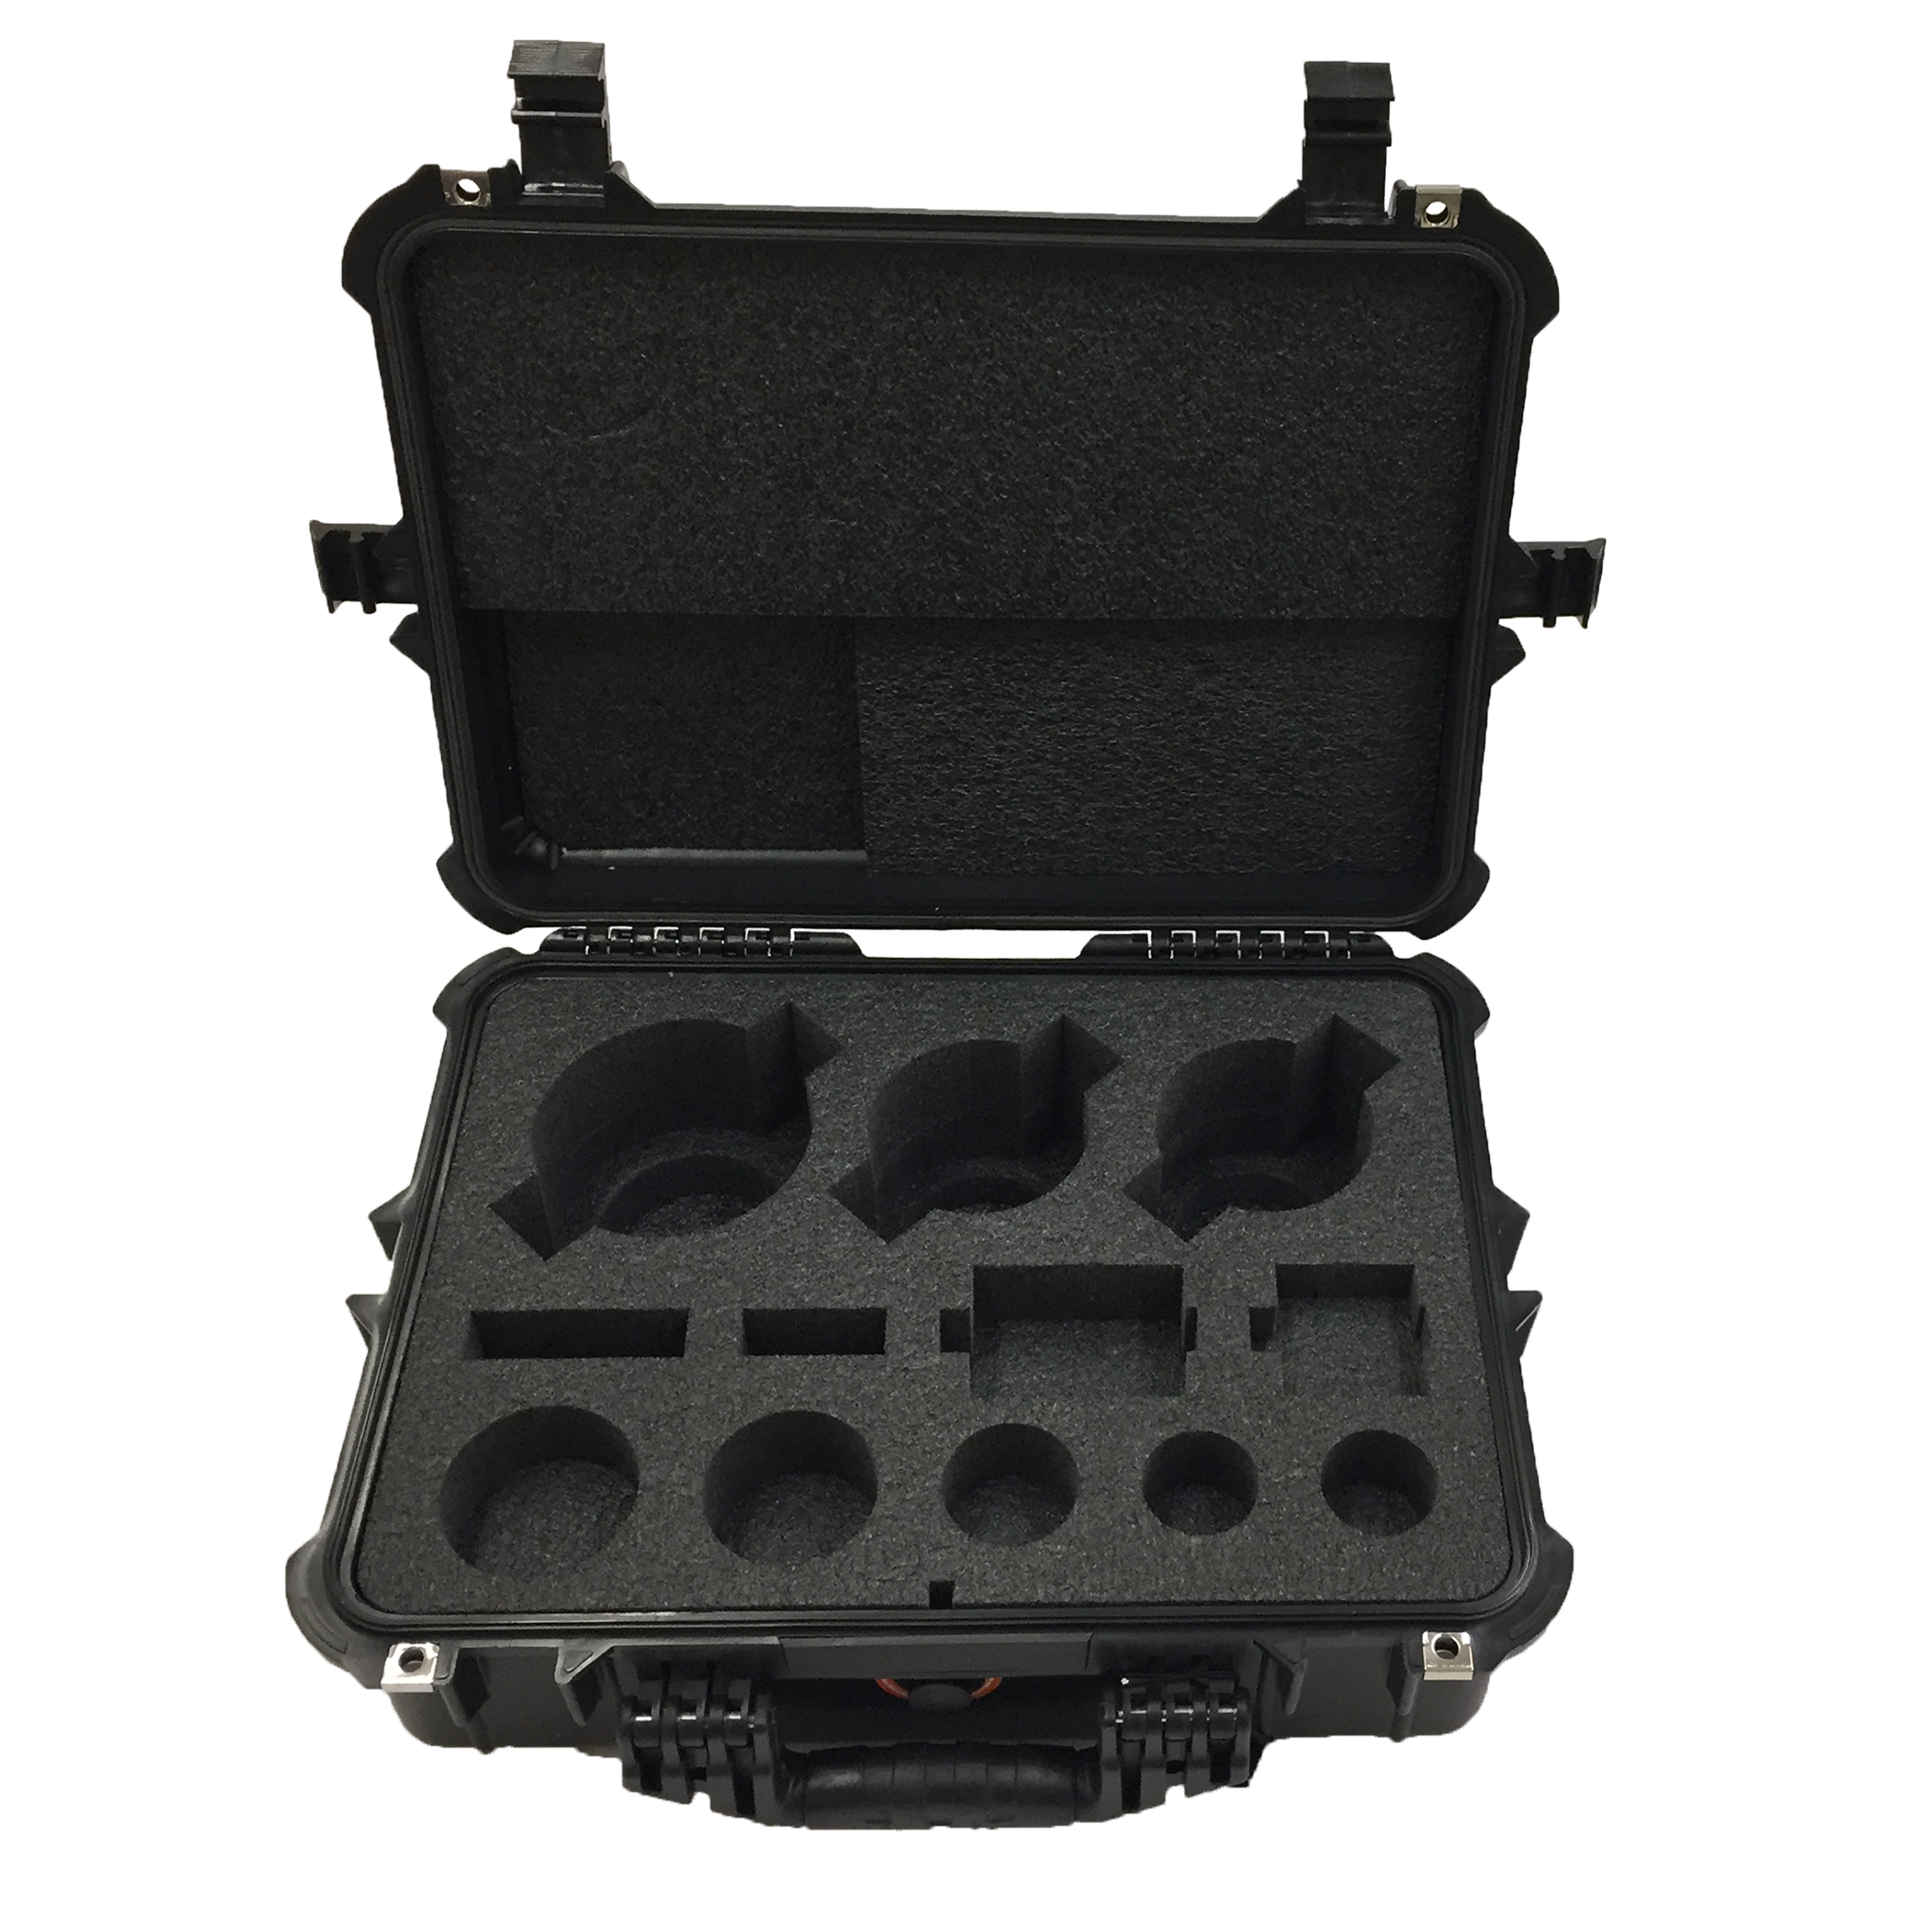 Custom Cut Foam Insert for Field Kit 2 Case Components